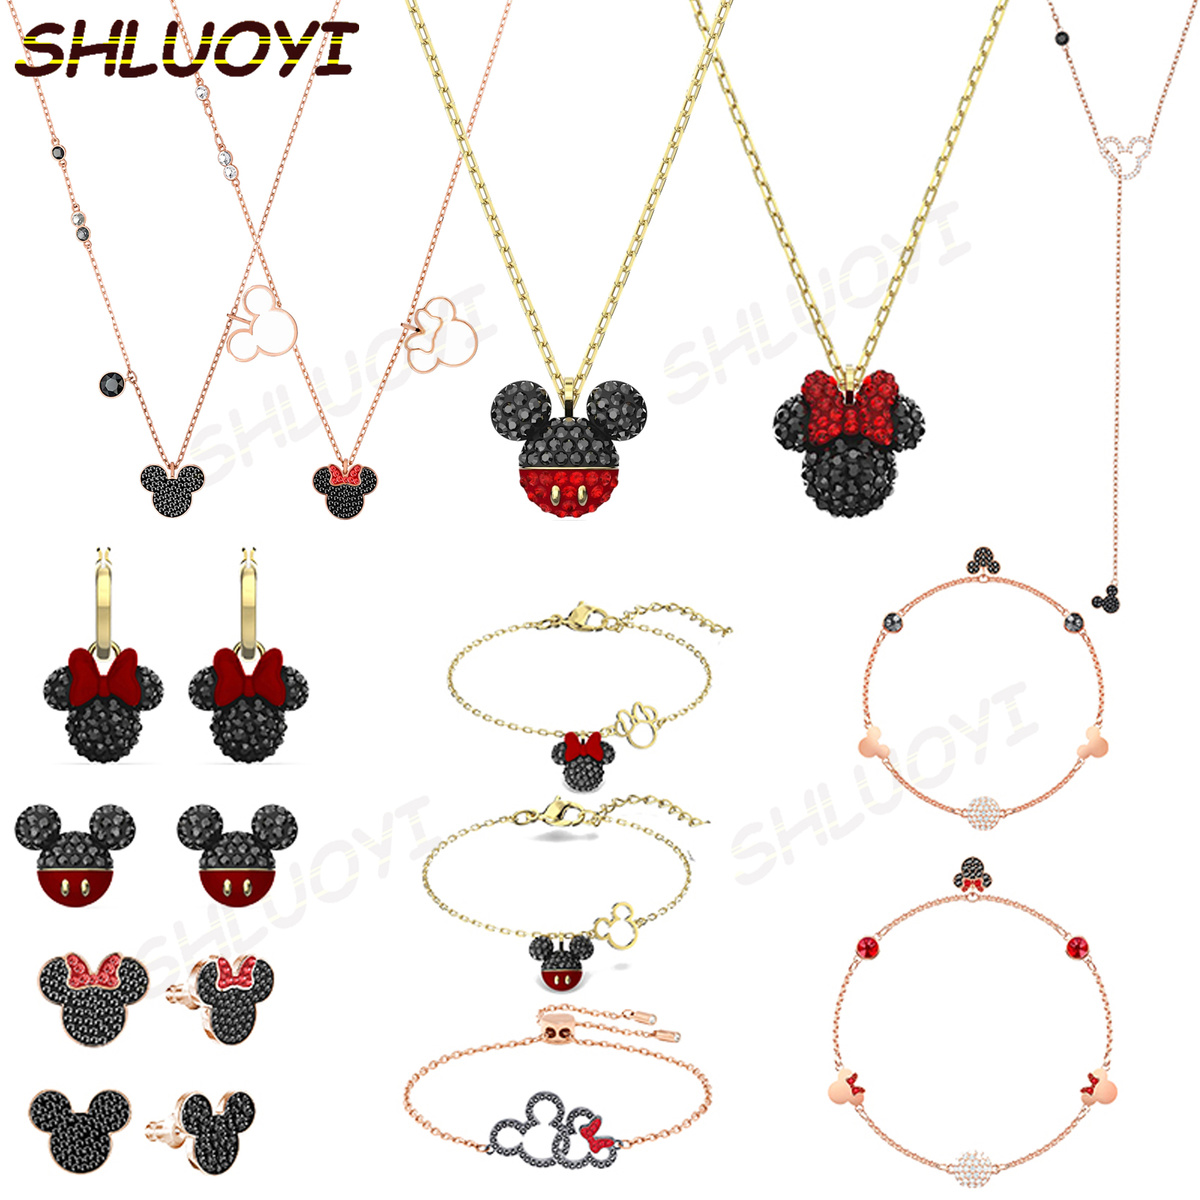 2020swa1:1 fashion jewelry products mouse Necklace Charm series exquisite popular